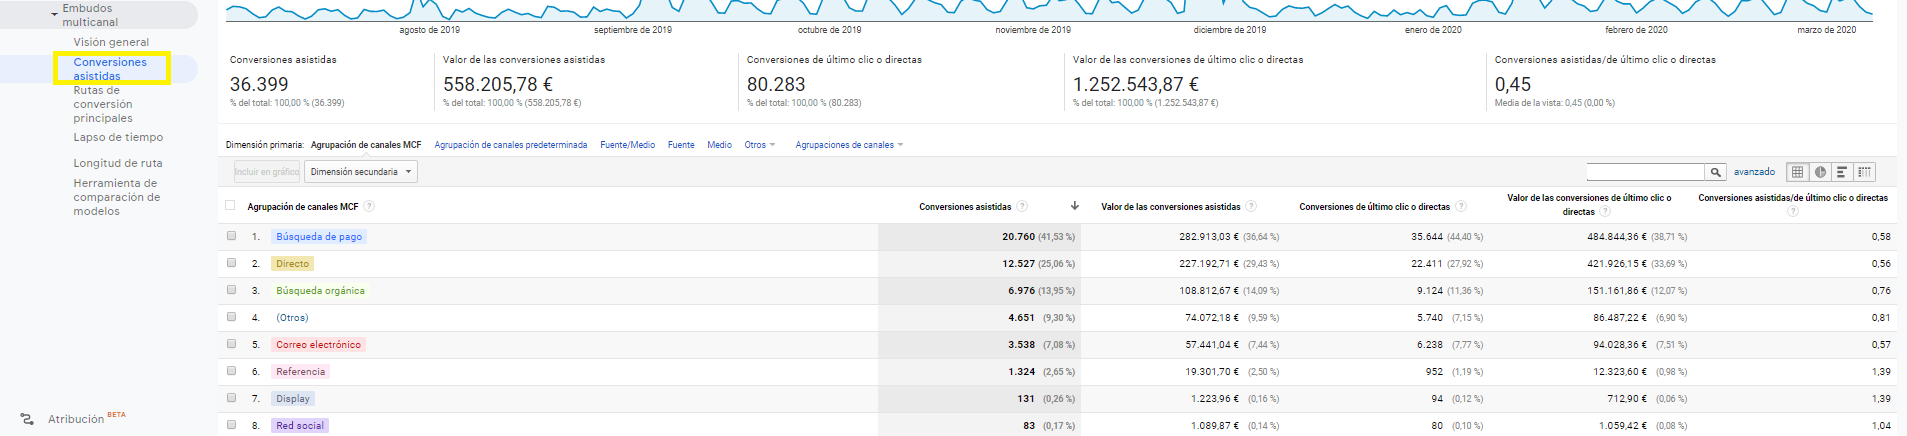 Conversiones asistidas en Google Analytics